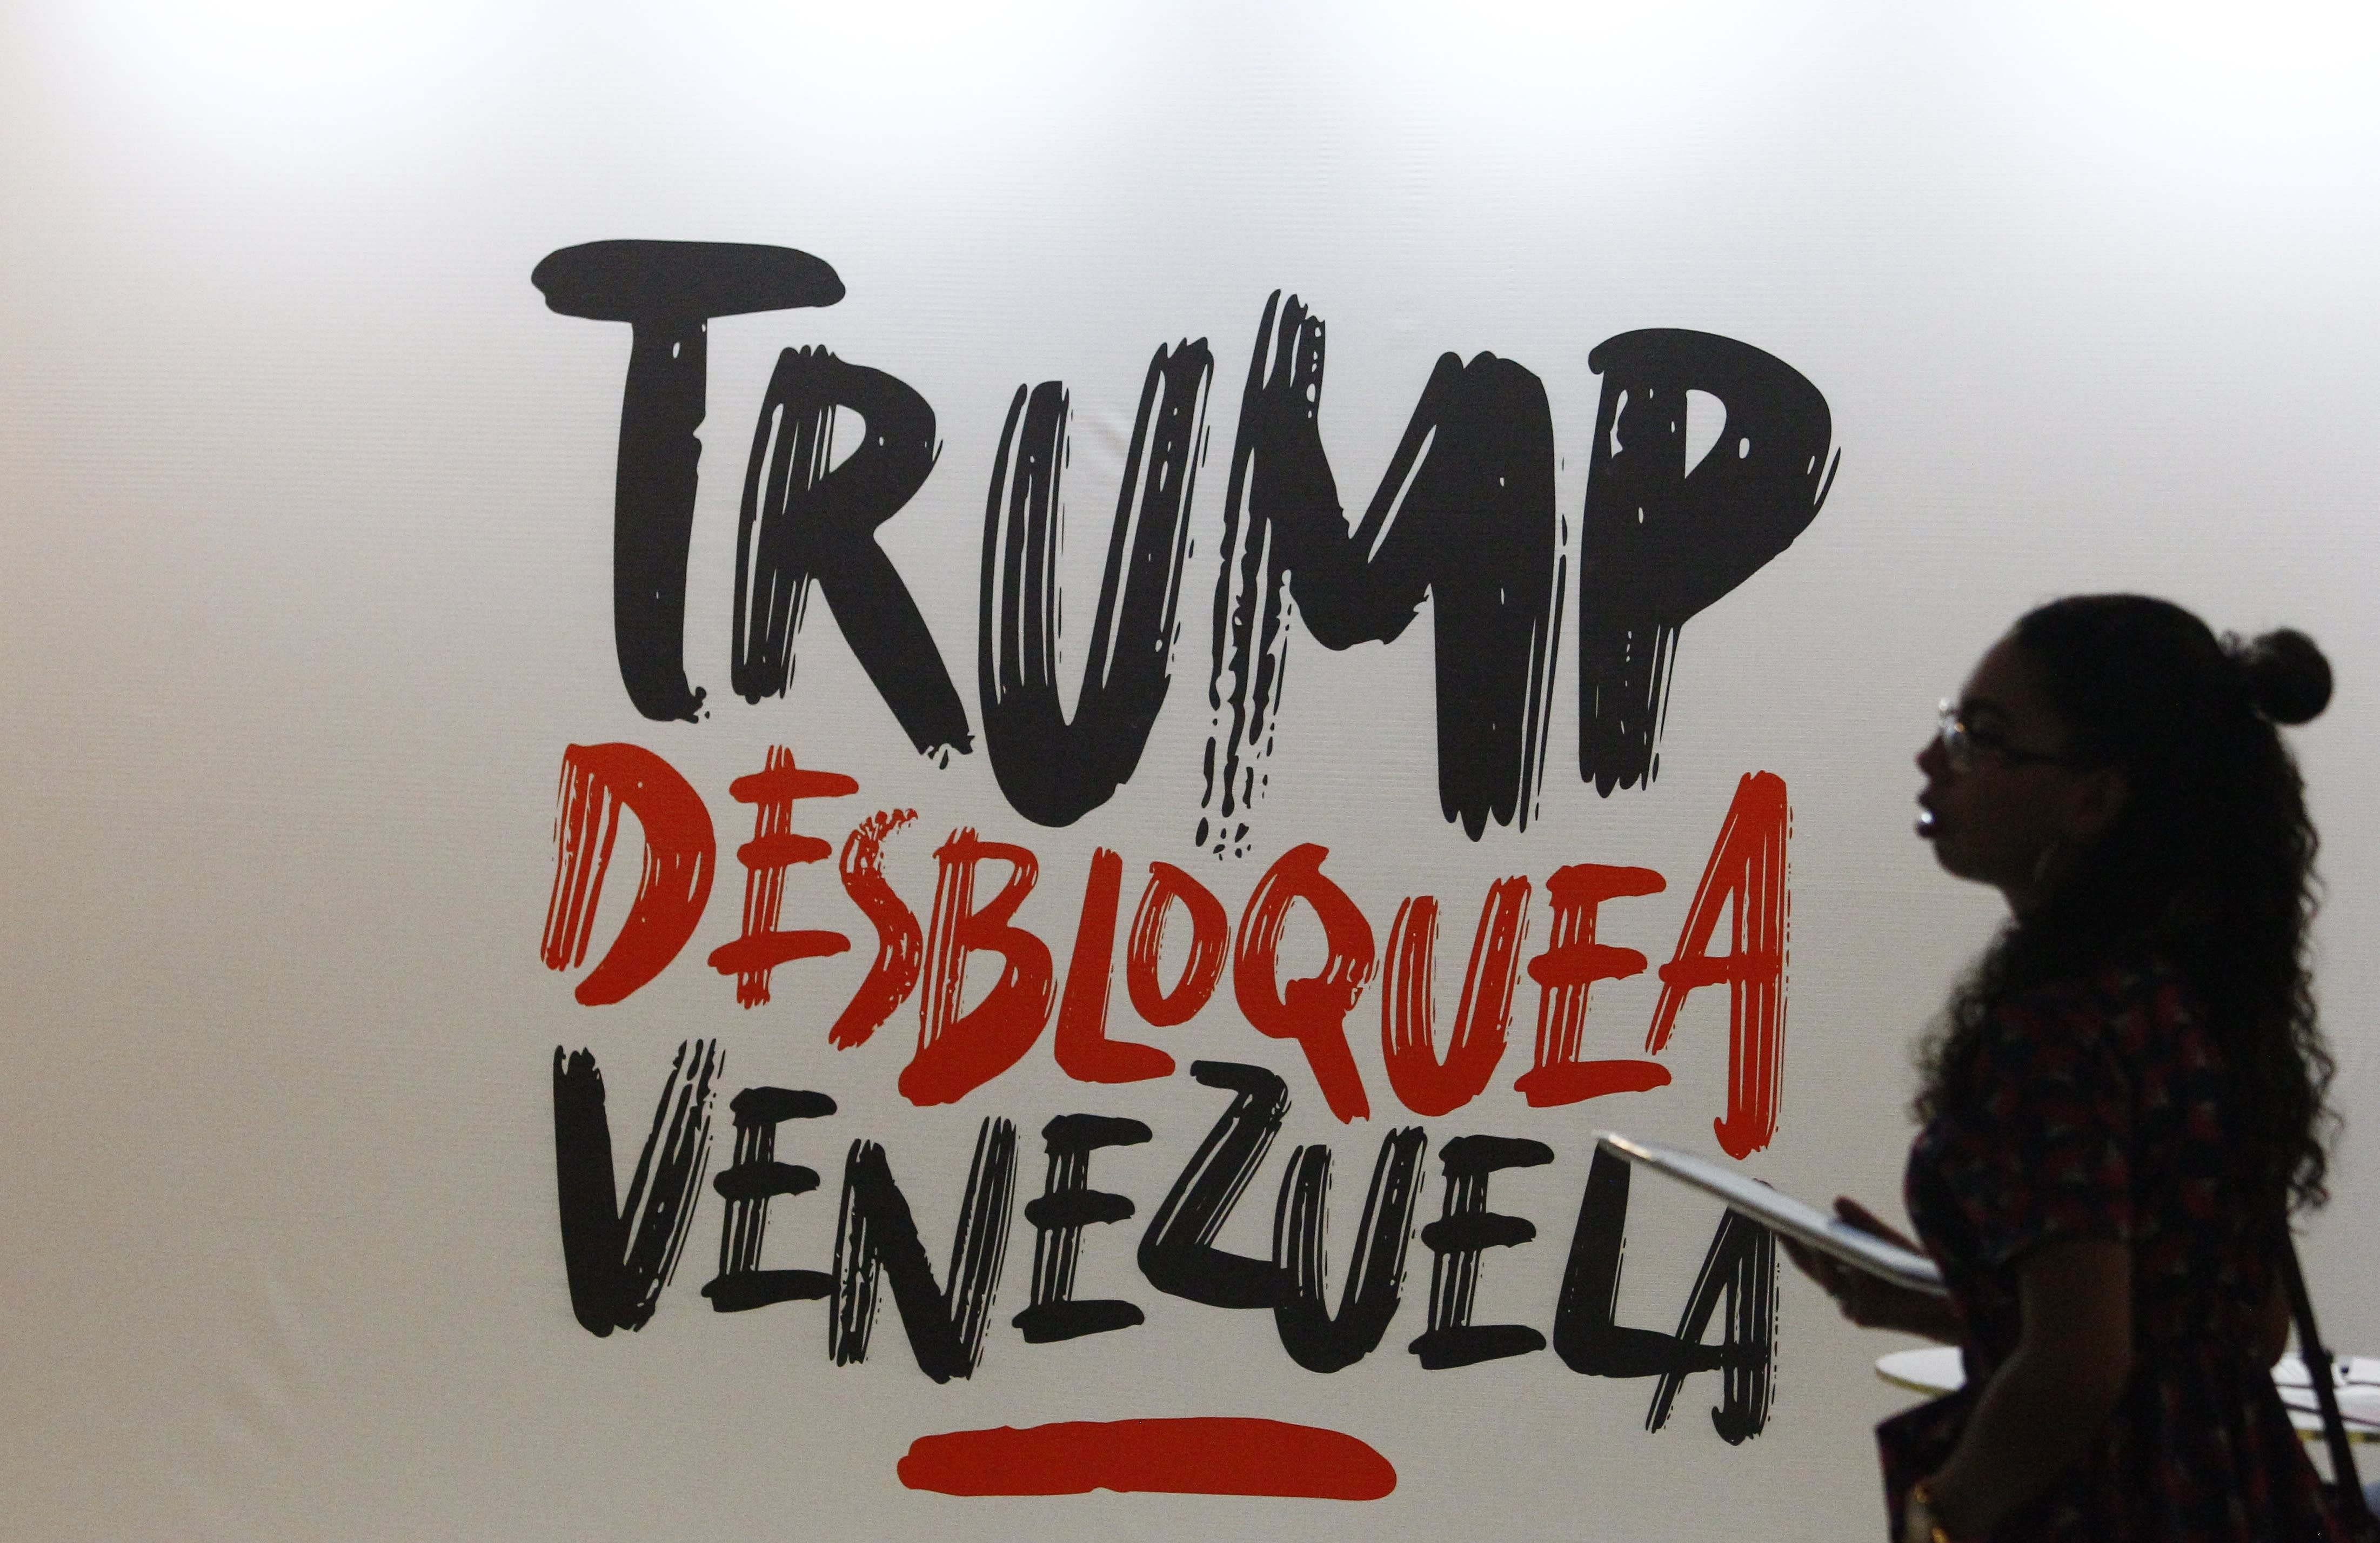 """A woman walks next to a sign that reads in Spanish """"Trump, Unblock Venezuela,"""" a reference to the Venezuelan government view that U.S. sanctions, aimed at toppling President Nicolas Maduro, are driving the country's economic problems, at the Sao Paulo Forum in Caracas, Venezuela, Friday, July 26, 2019. (AP Photo/Leonardo Fernandez)"""